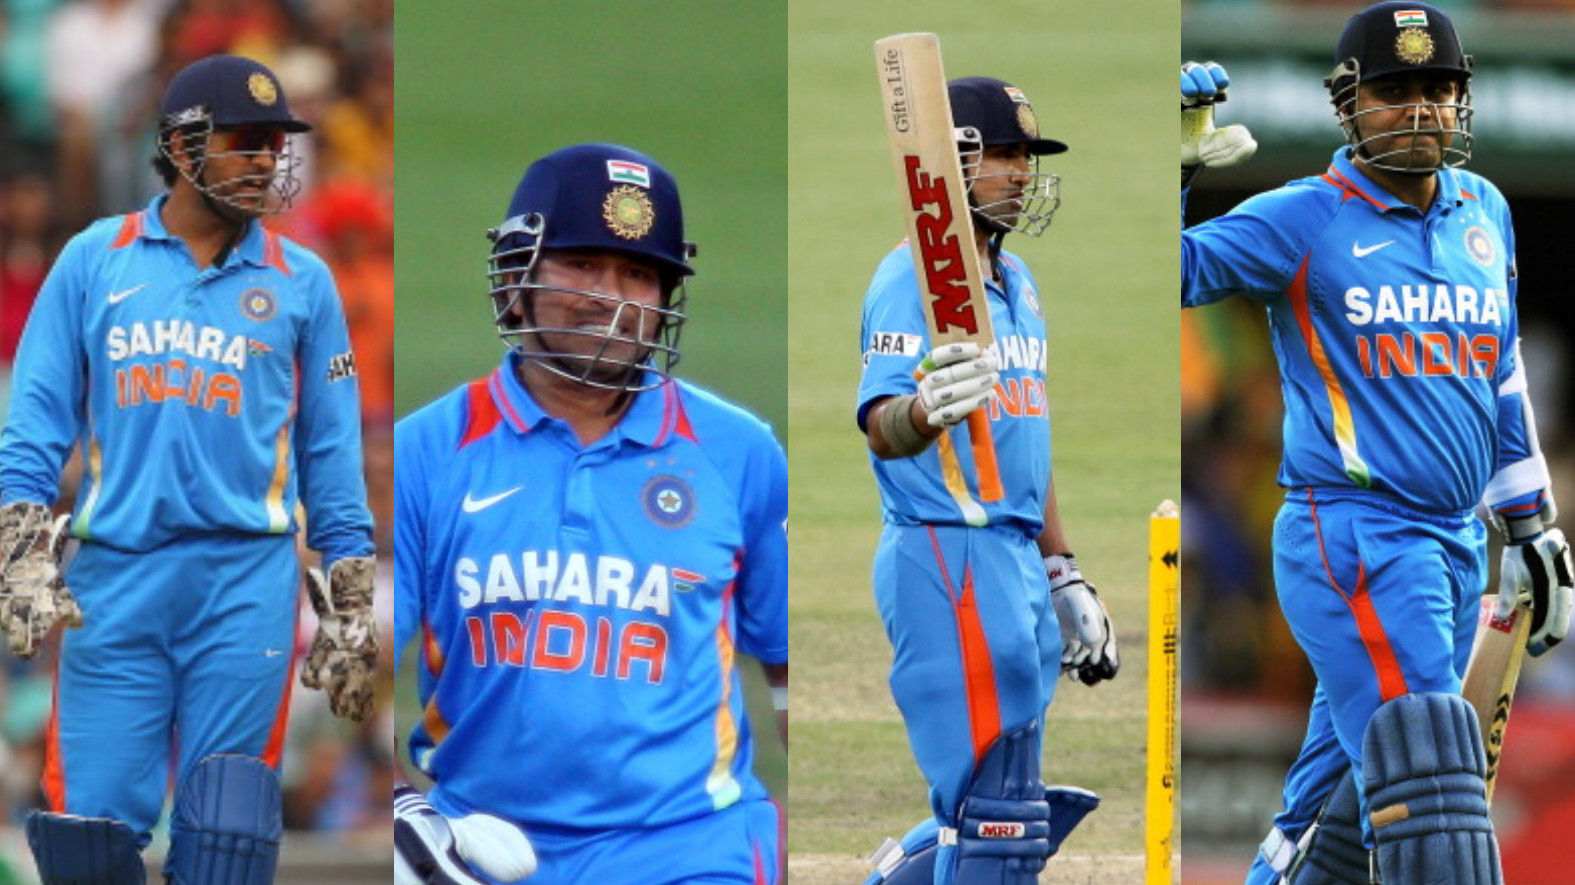 Gautam Gambhir's explosive revelation about his reaction to MS Dhoni's bizarre selection policies in 2012 Australia tri-series